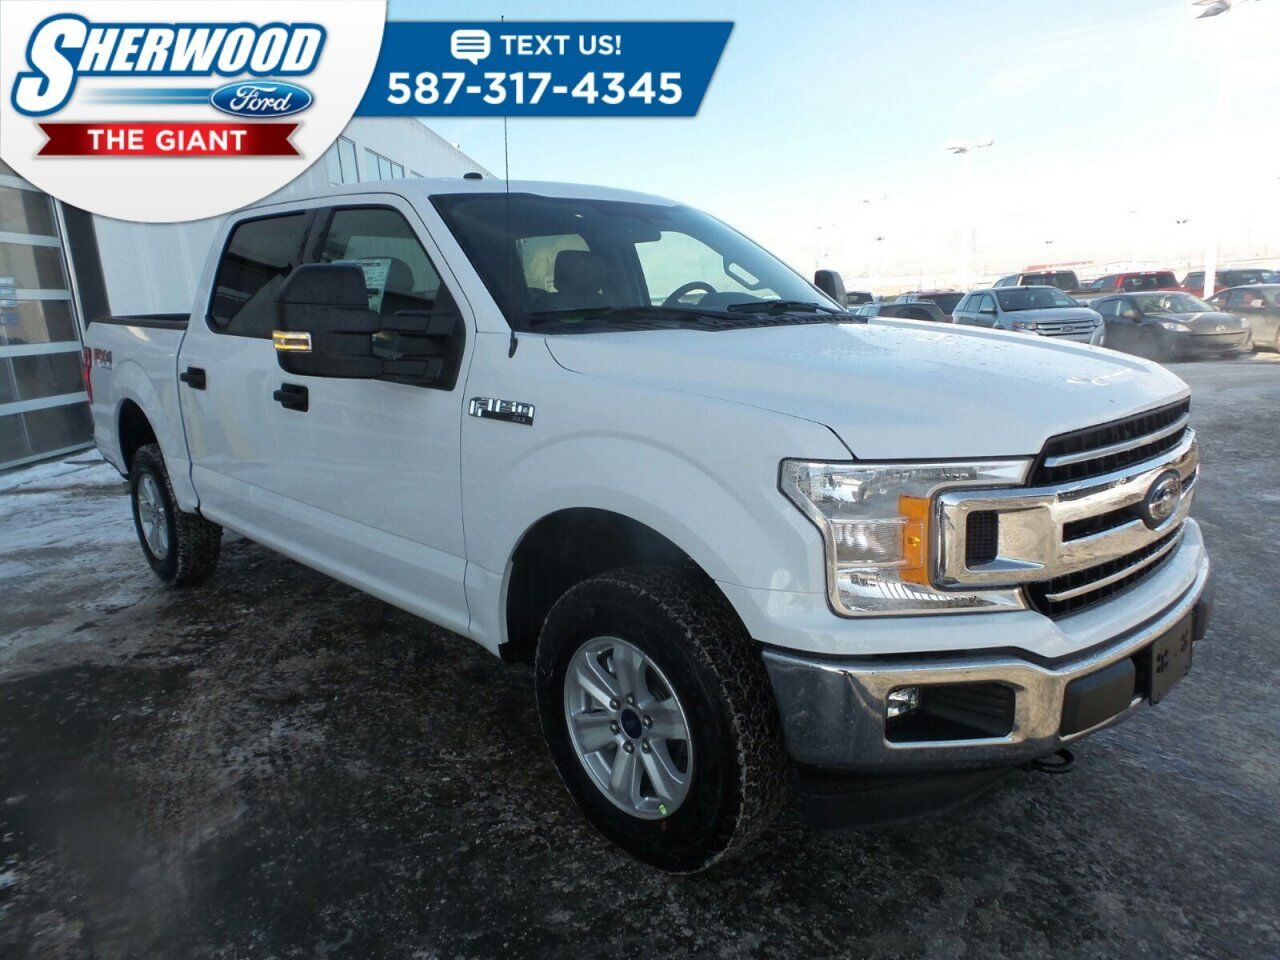 Sherwood Park Ford Used Cars